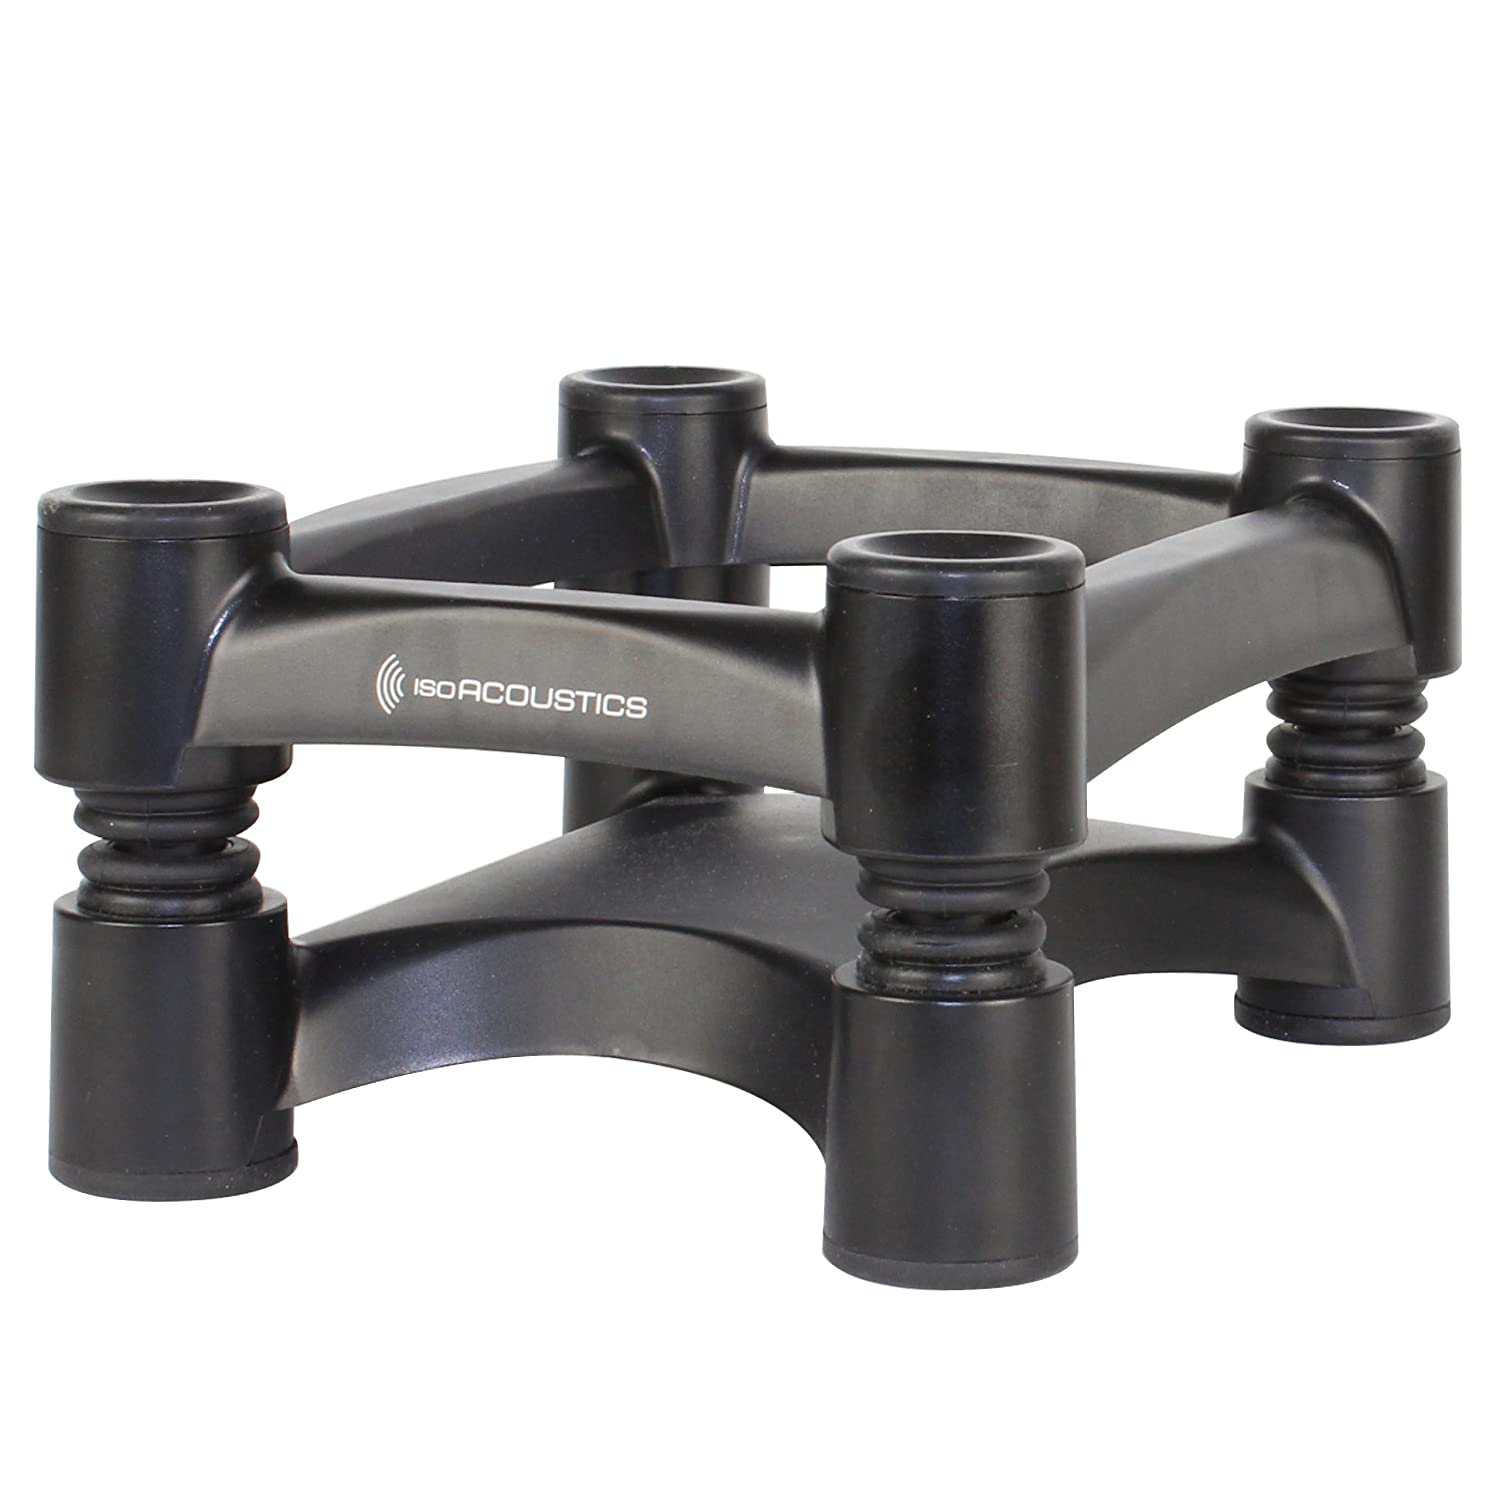 IsoAcoustics ISO-L8R200Sub Acoustic Isolation Stand for Subwoofers - Large - Single 1004758